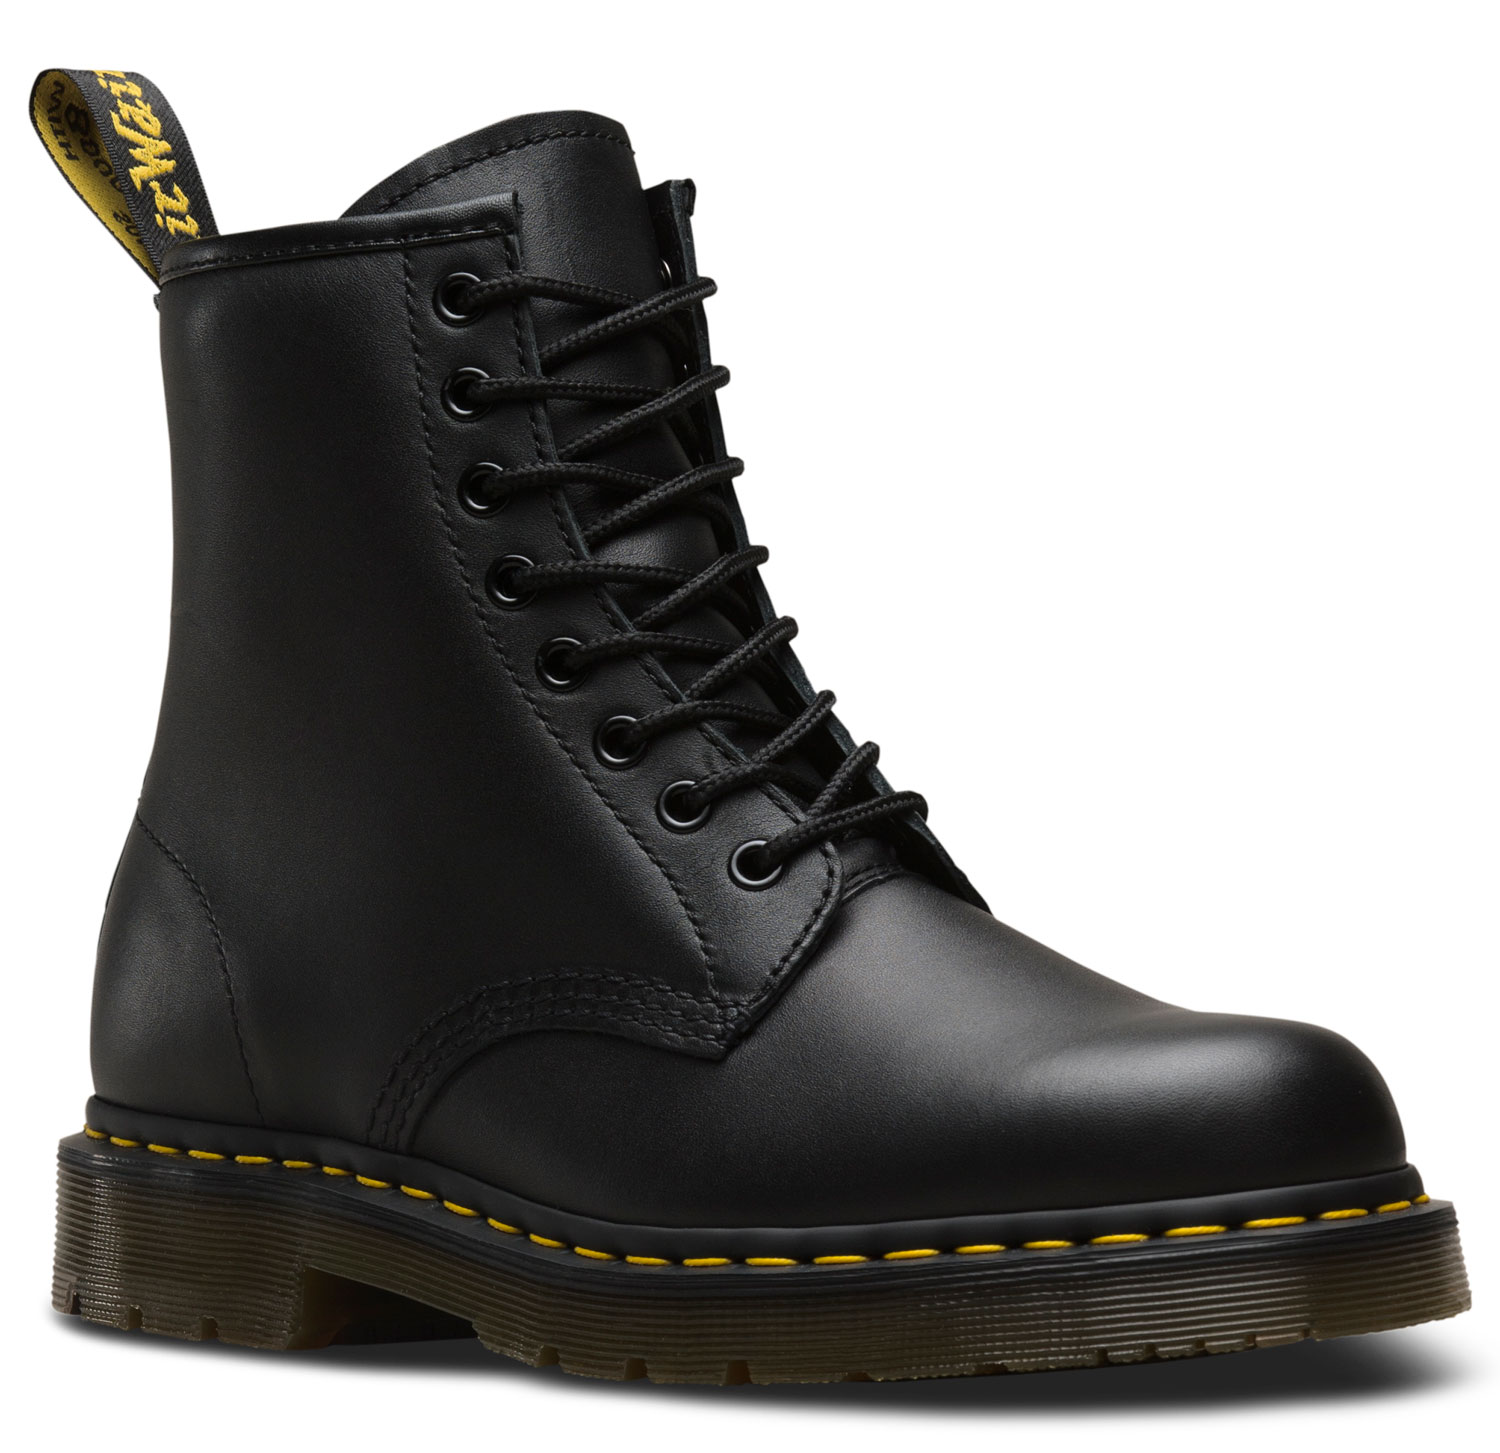 Work Boots, Safety Shoes, Steel Toe